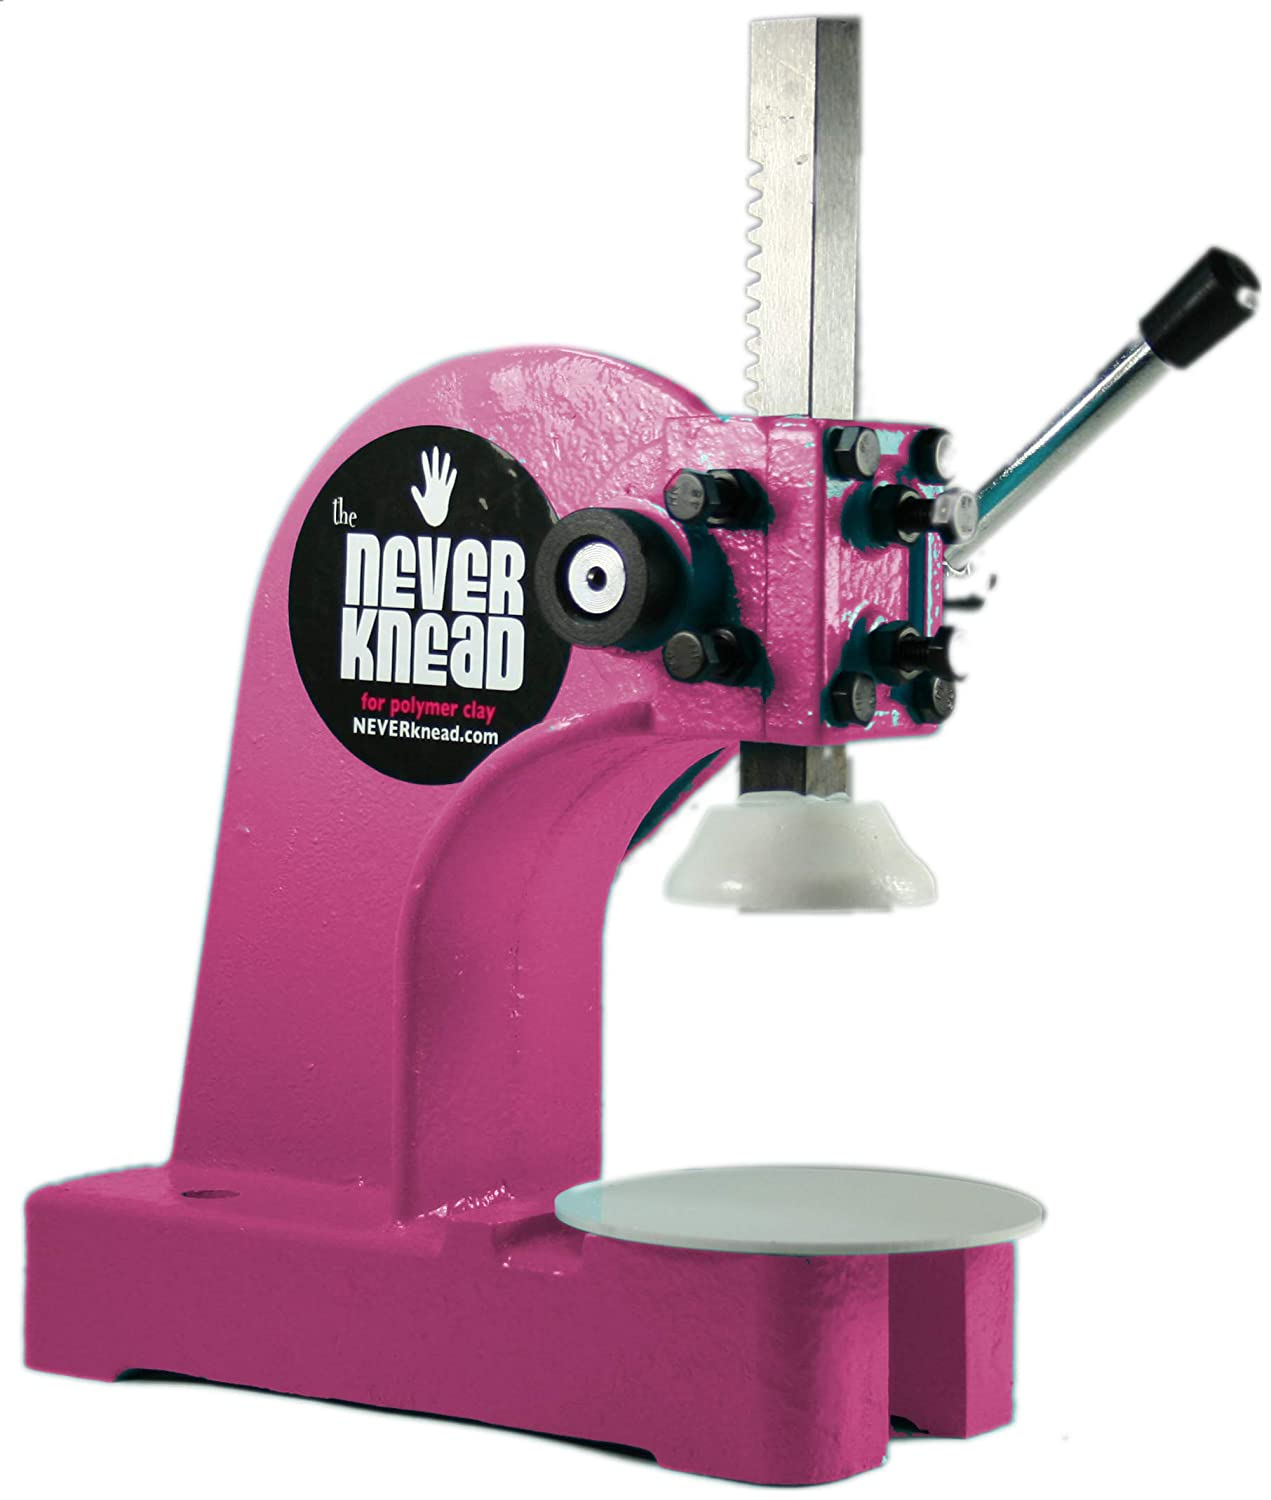 Hot Pink NEVERknead Polymer Clay Kneader Tool NEW - a Revolution in Clay Production for Artists - works with Sculpey Fimo & More EASY! Debra Ann of Atomic Mobiles NKVER1